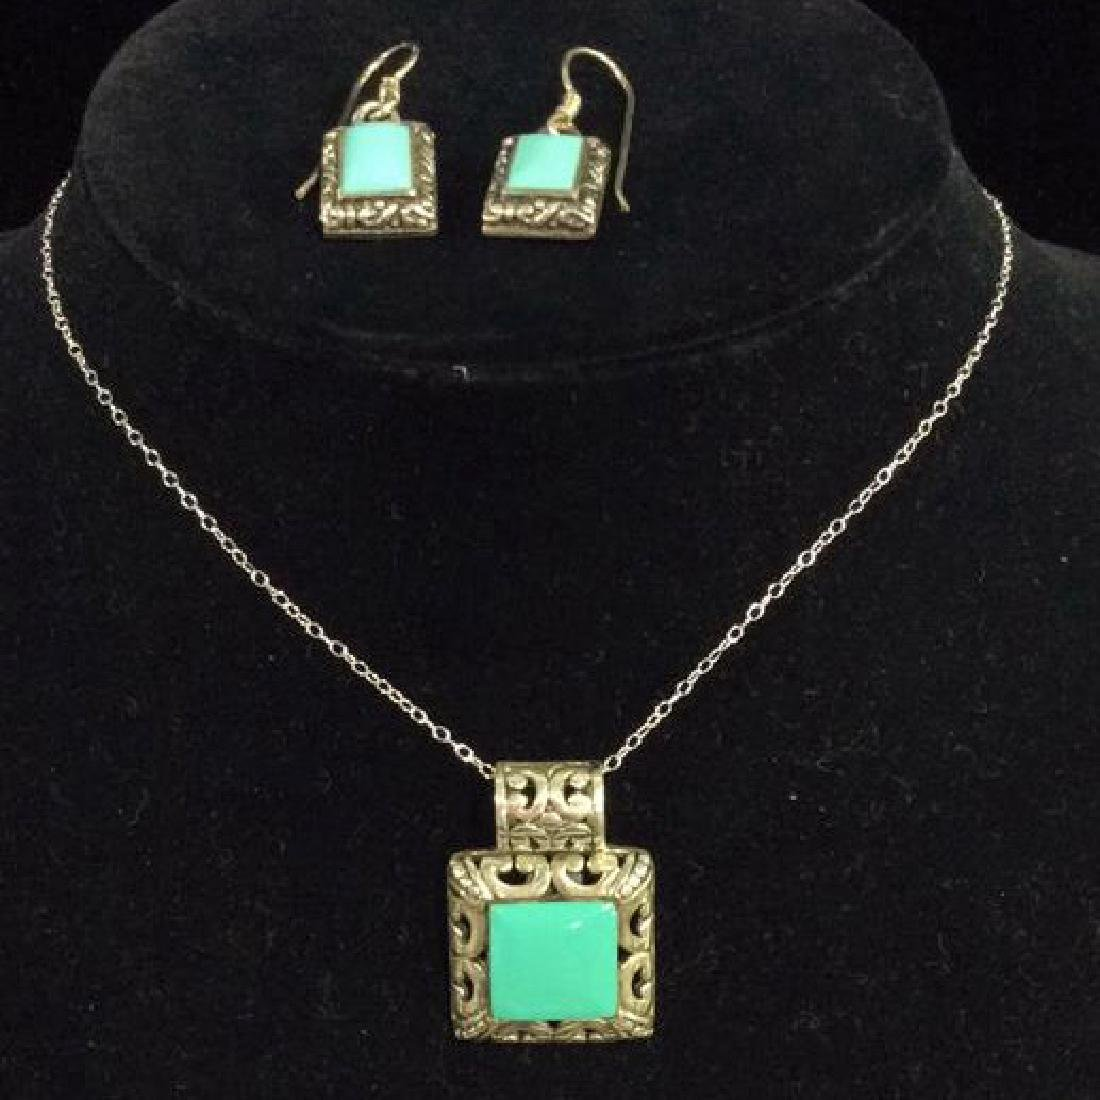 Set 2 Sterling W Turquoise Necklace&Earrings - 2